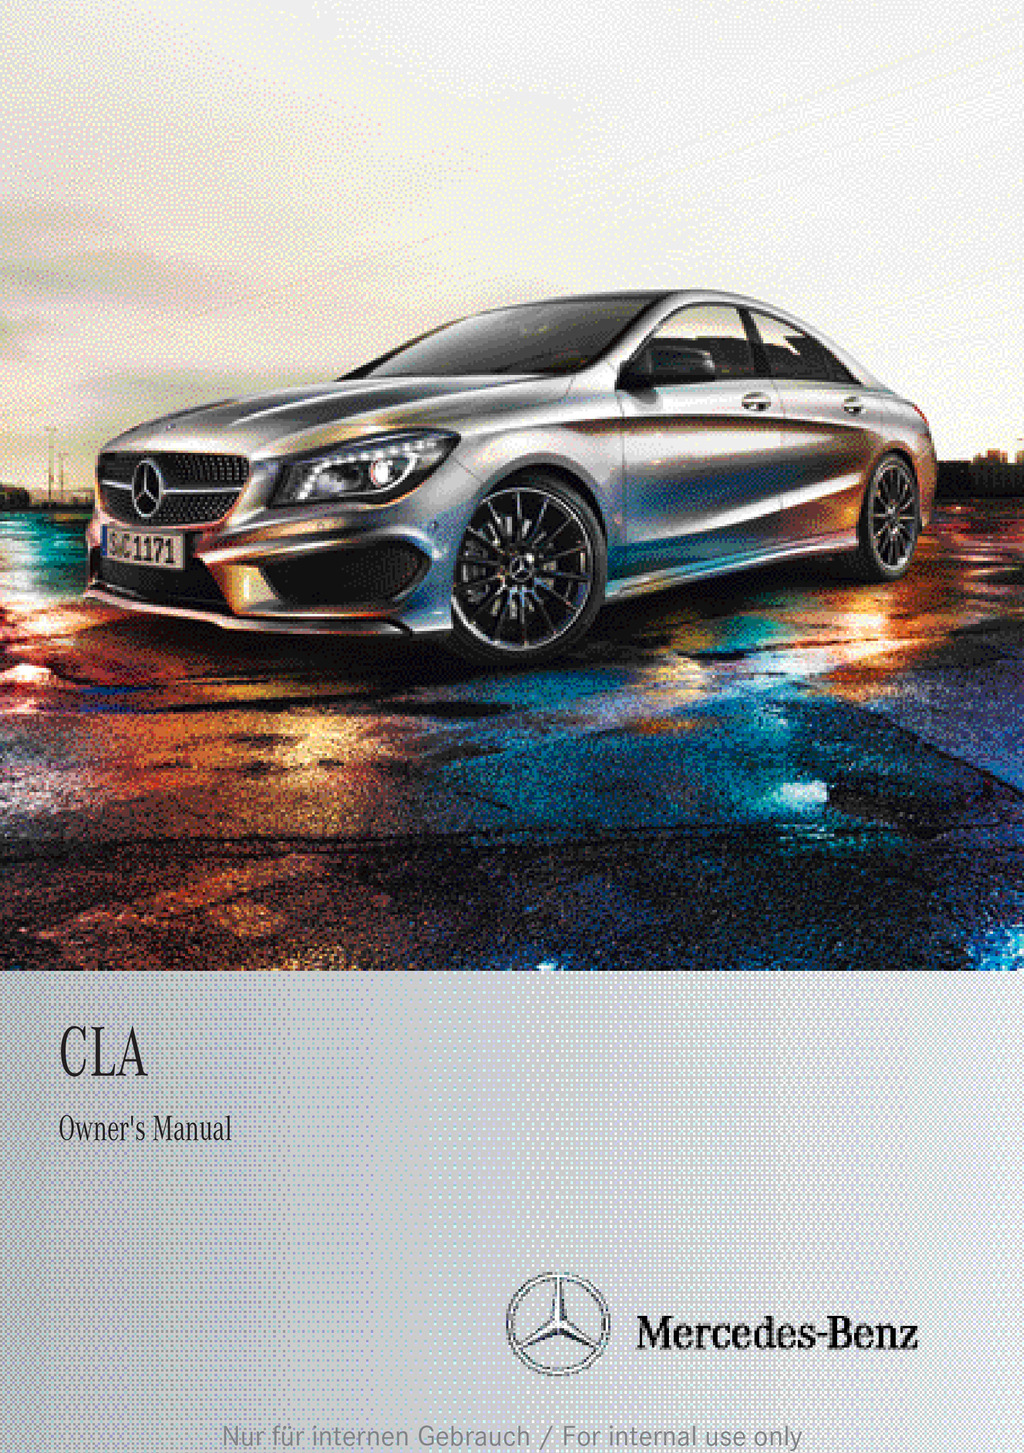 2013 Mercedes-Benz CLA owners manual